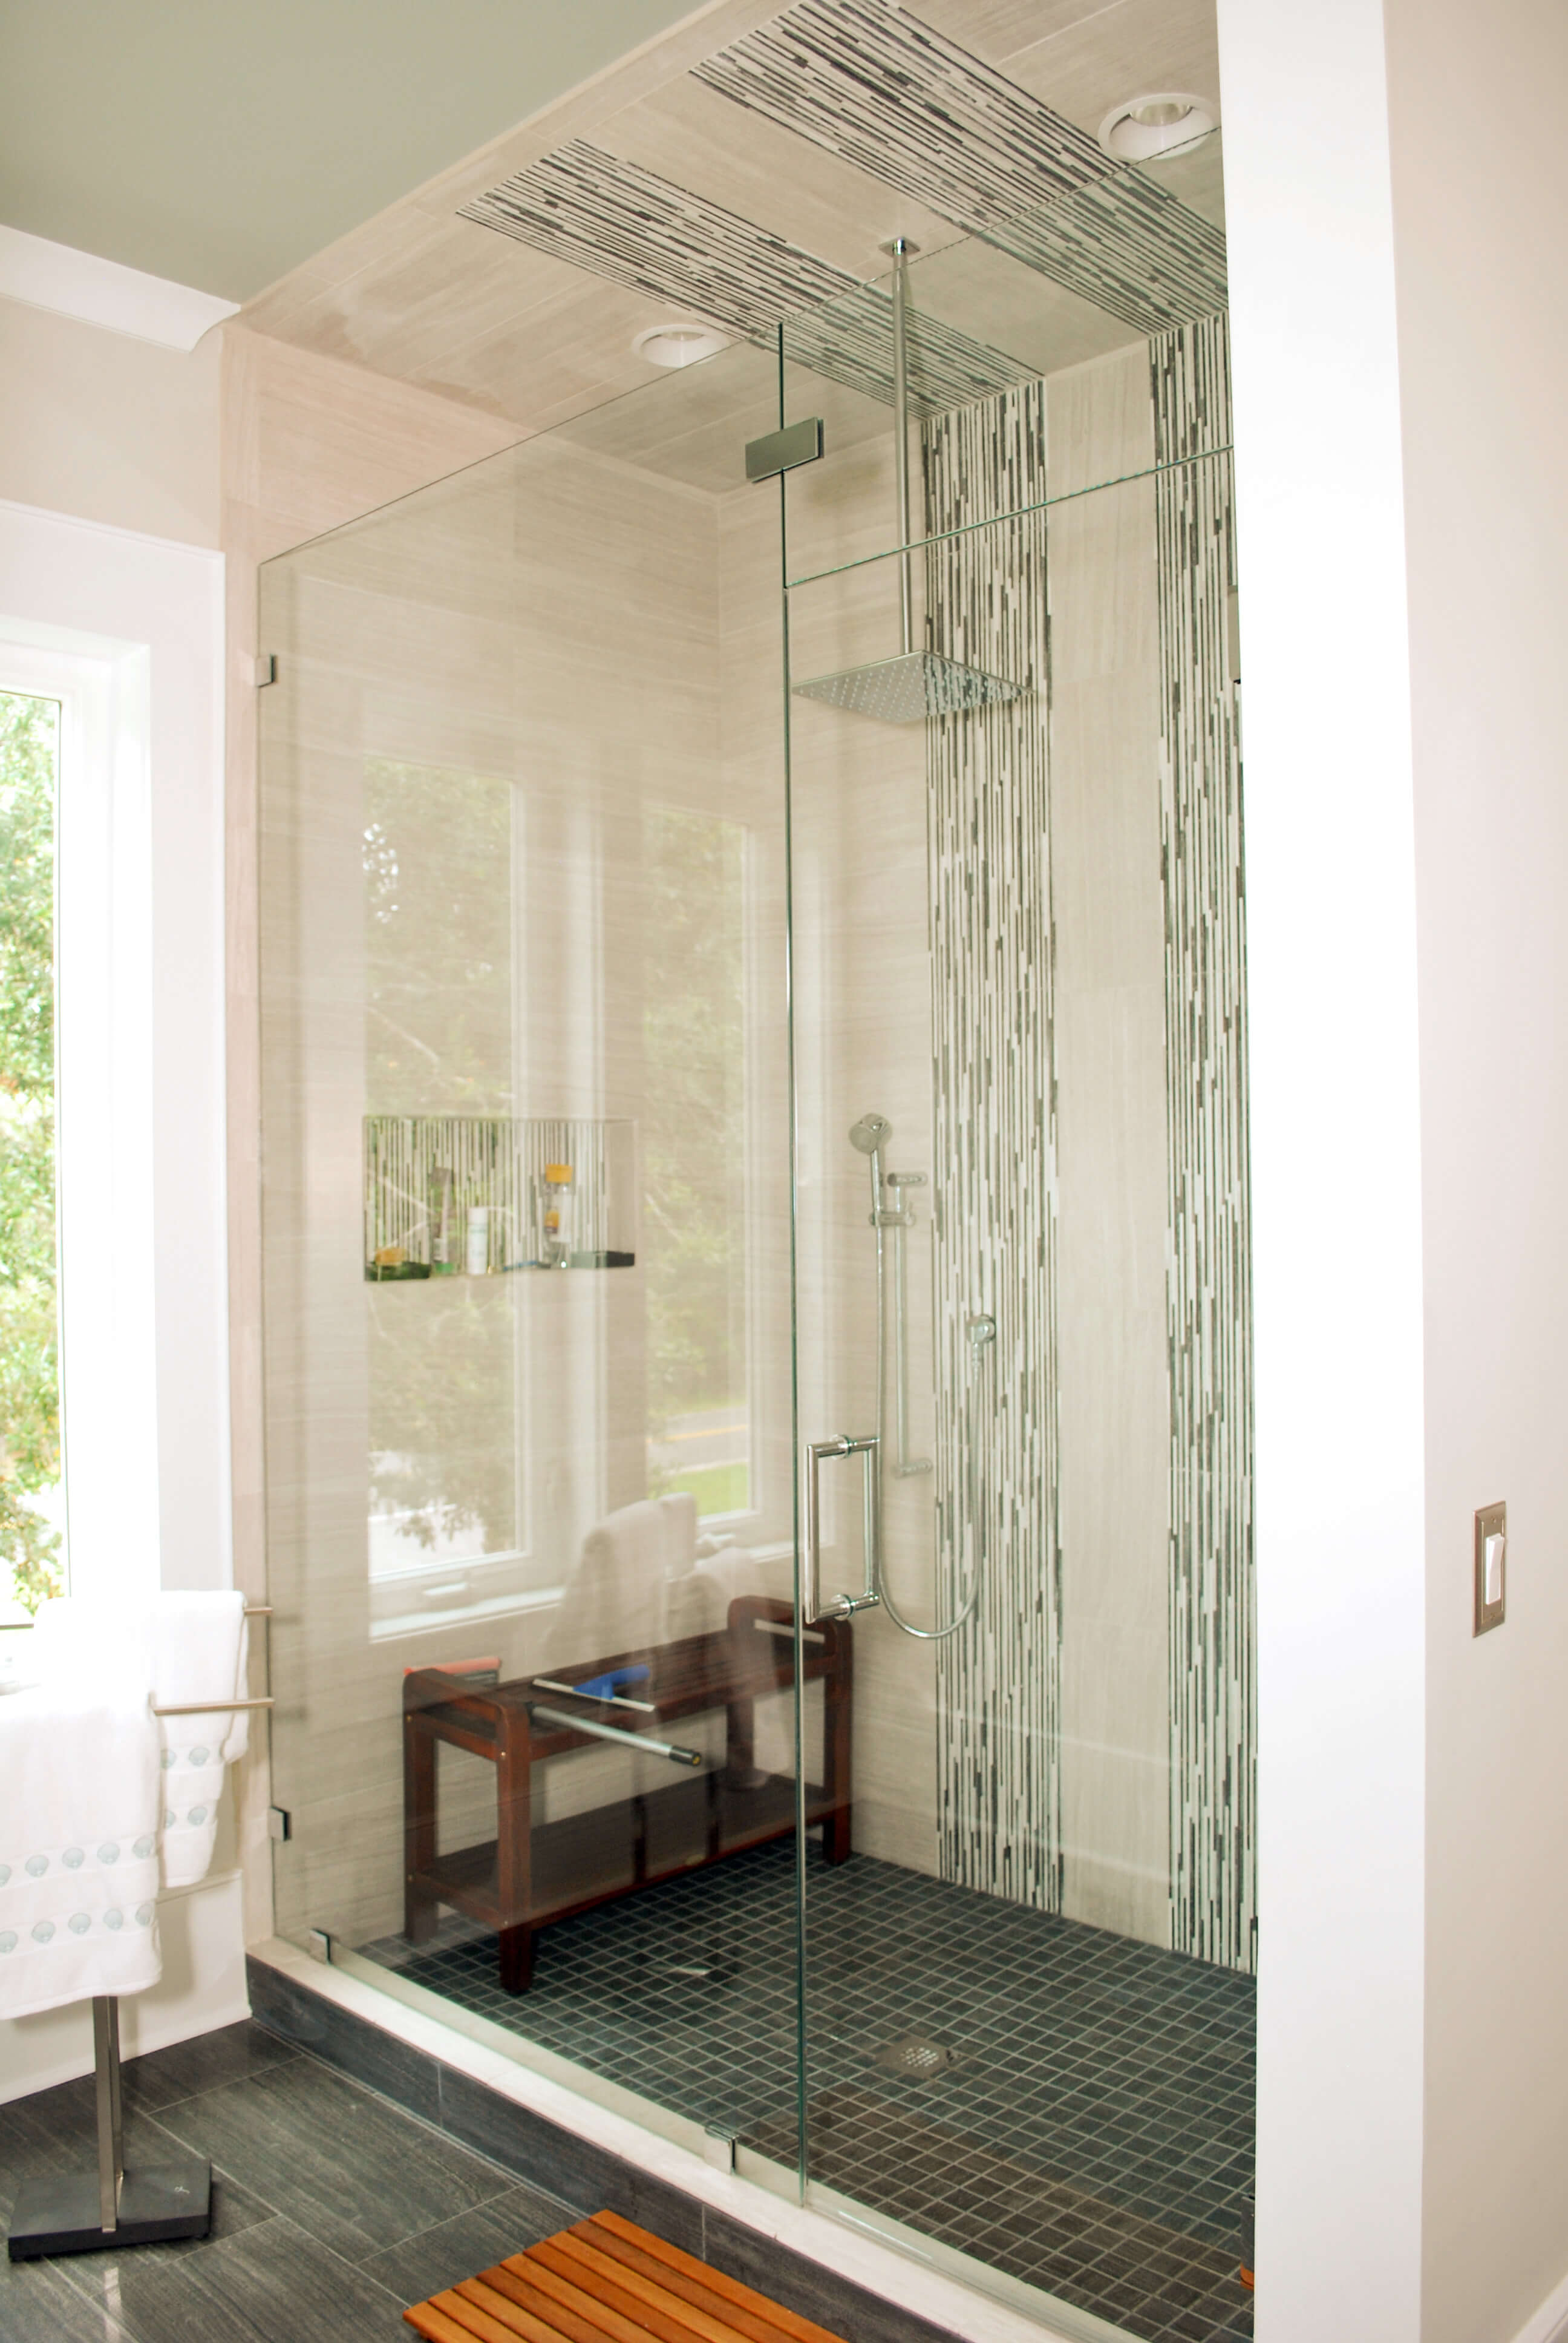 Primary bath features glass door shower with patterned tile accents and wood seating.